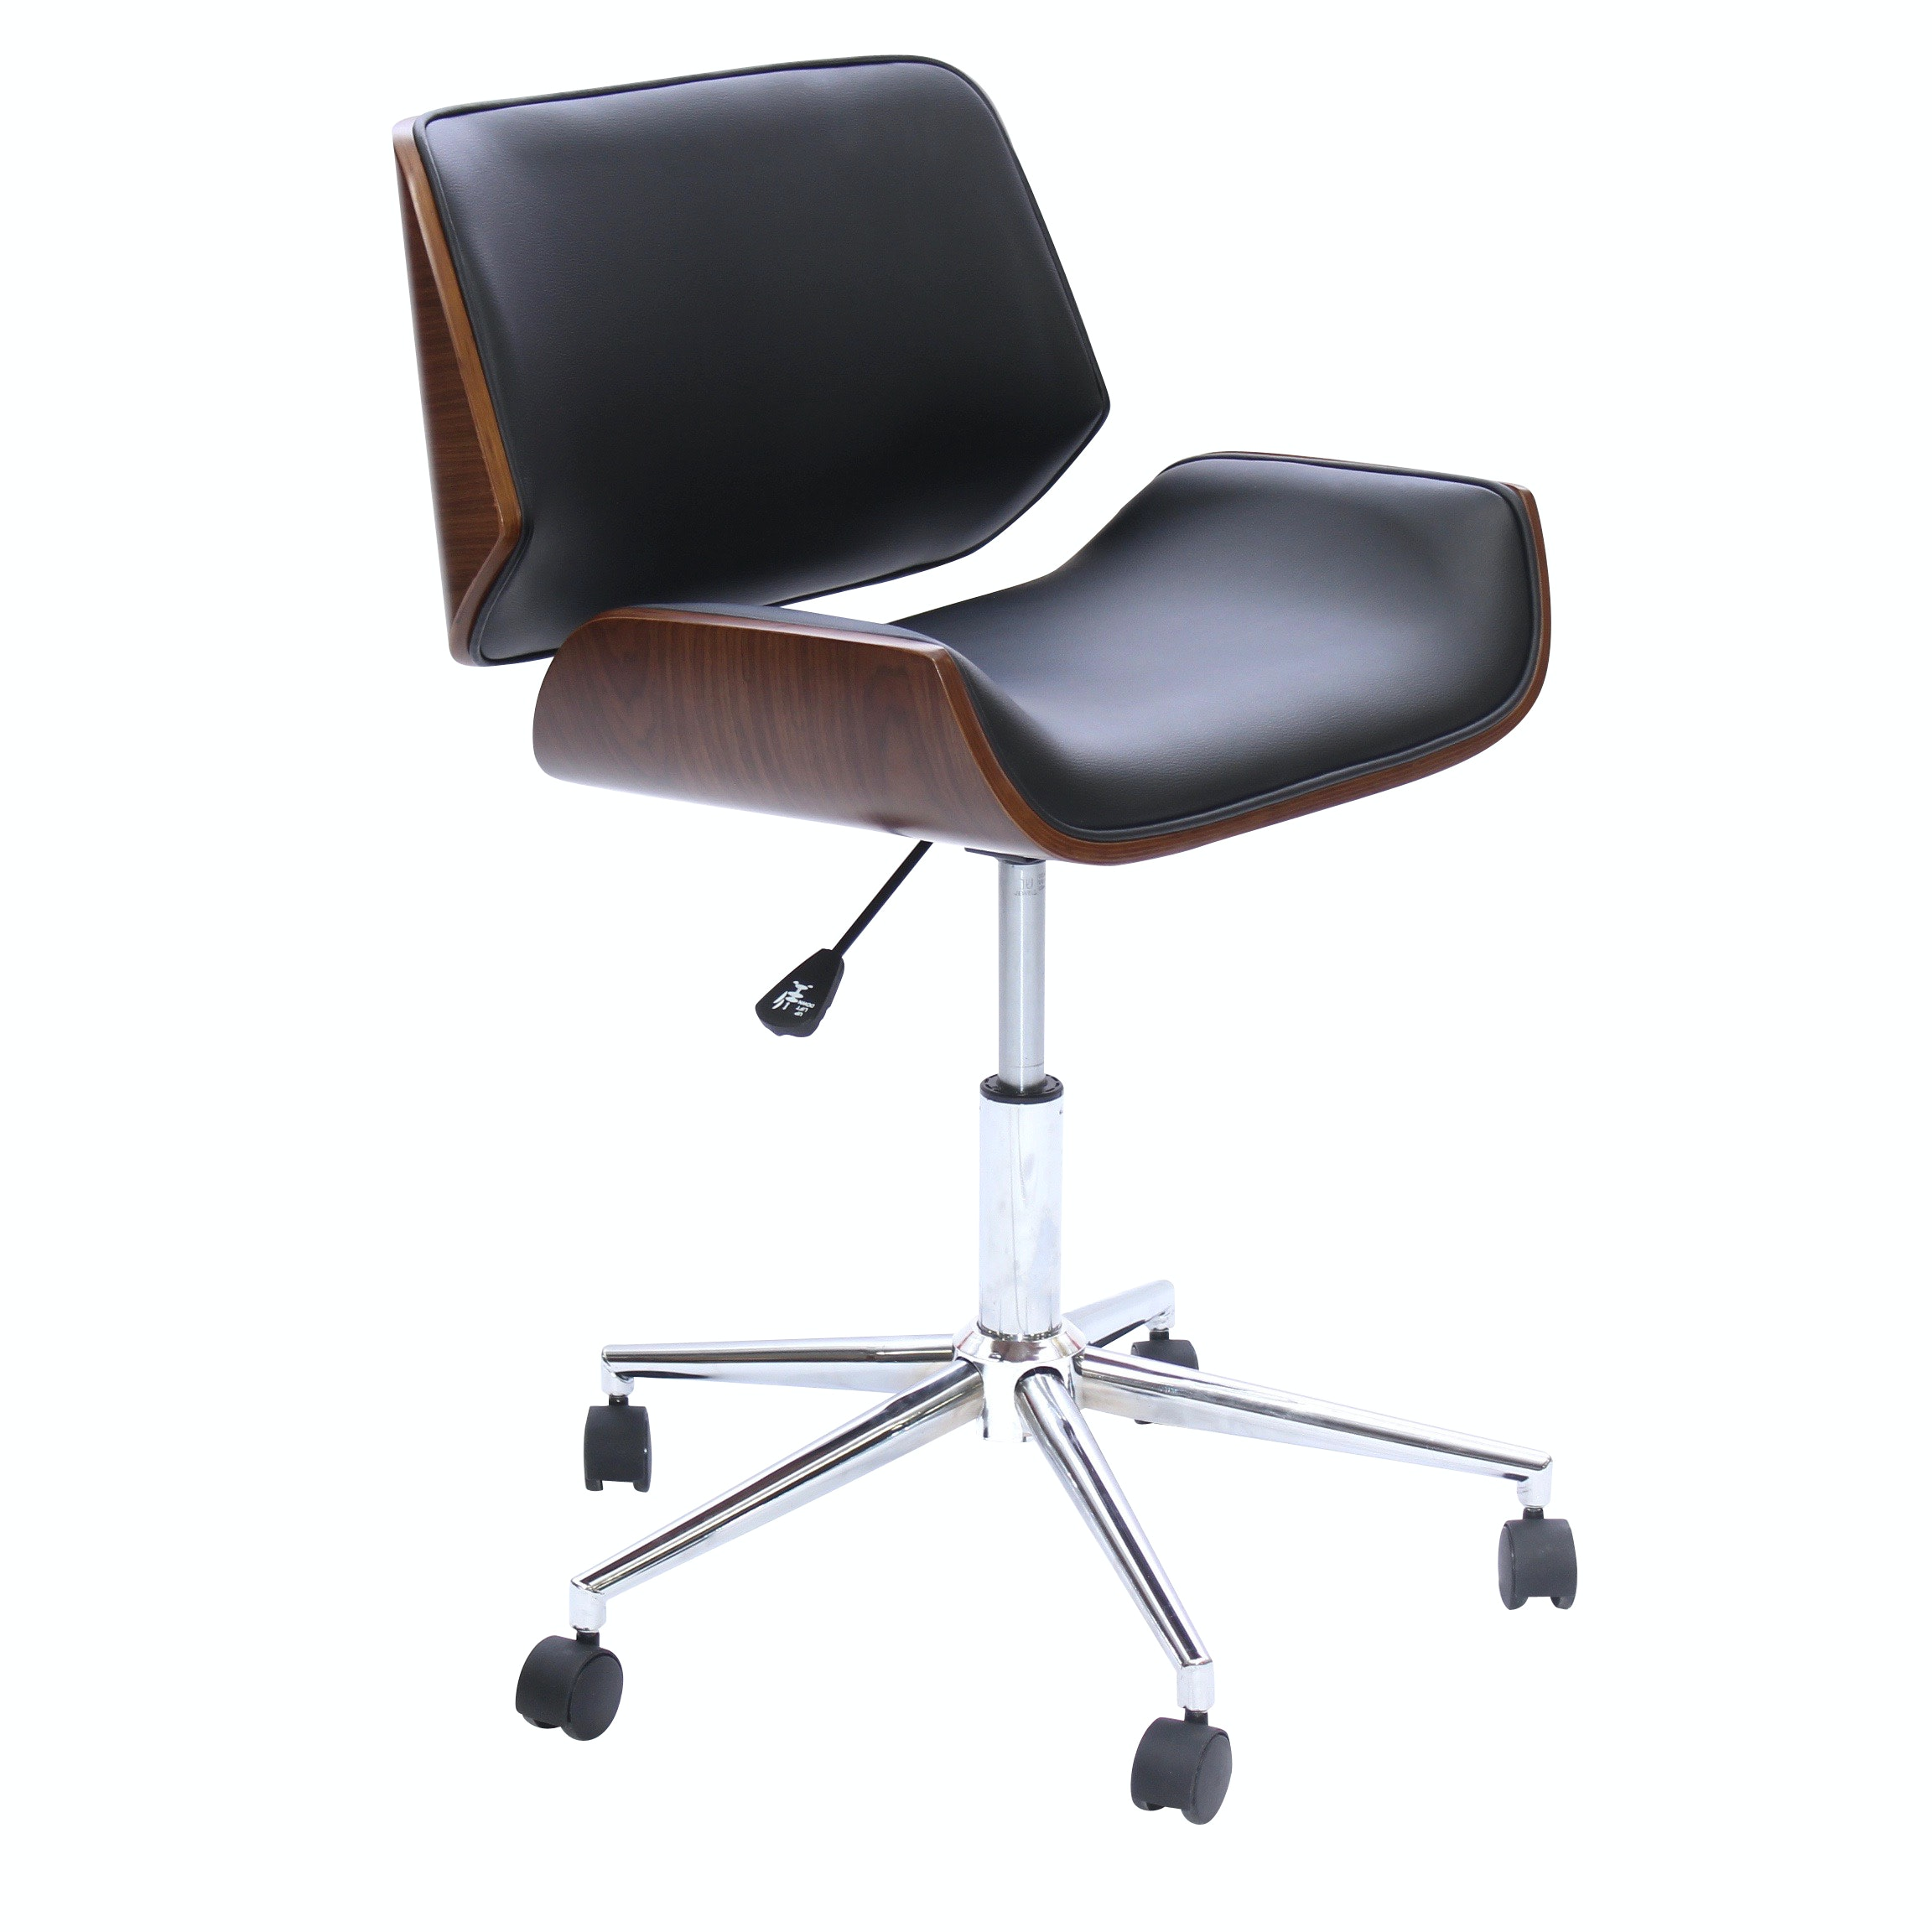 Mid-Century Modern Style Office Chair, Contemporary